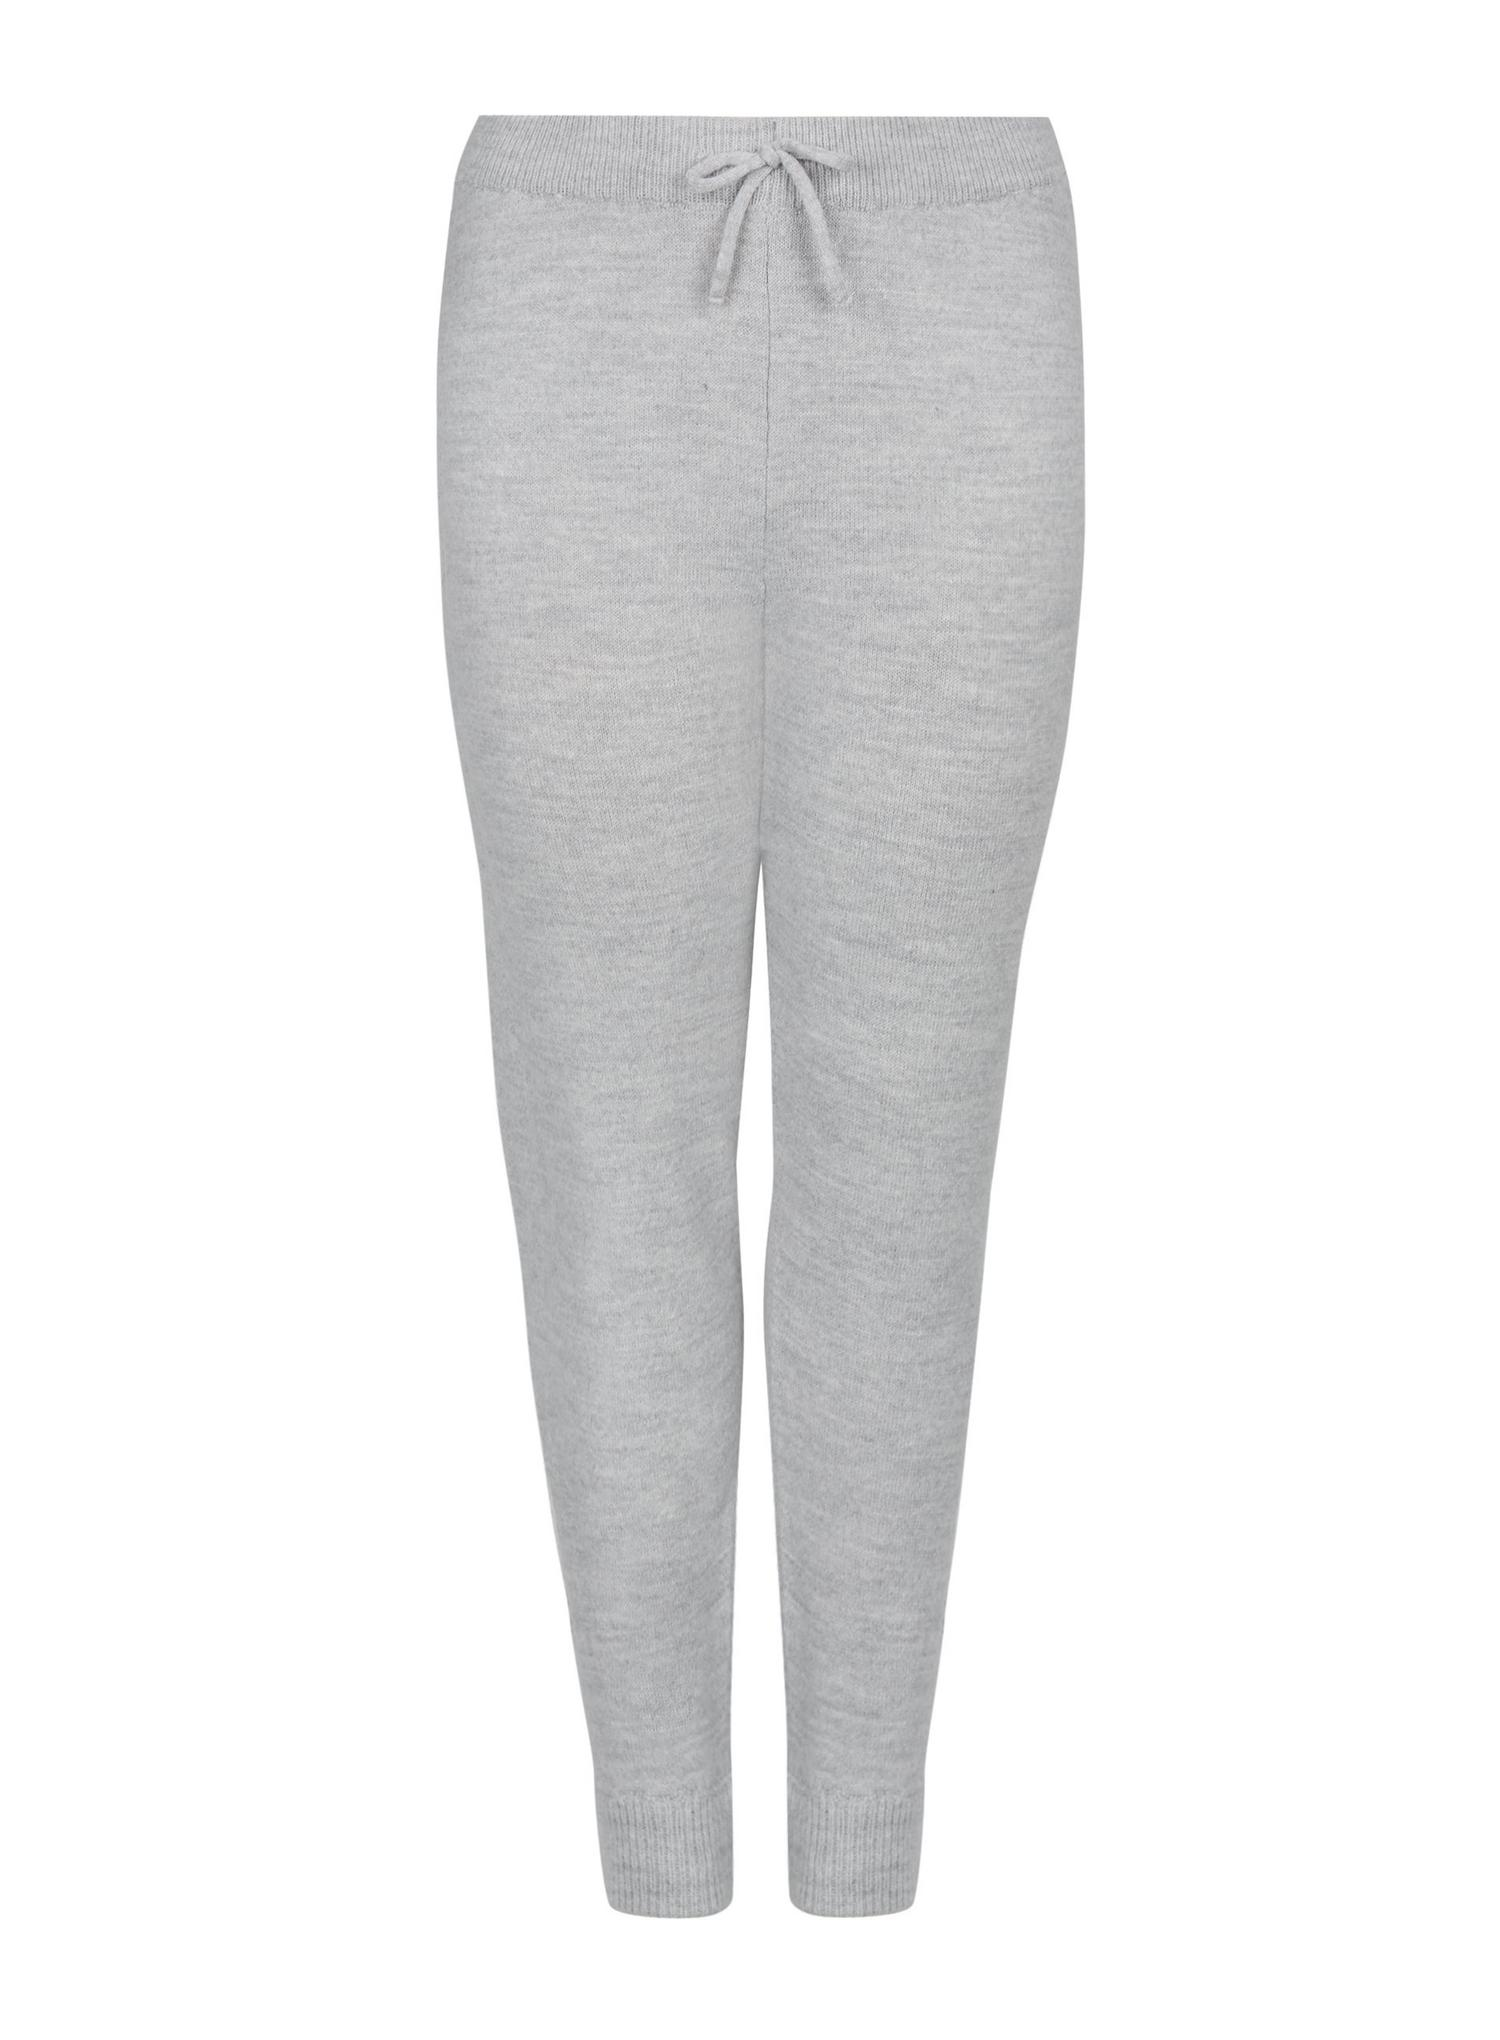 131 Curve Grey Lounge Knitted Joggers image number 4